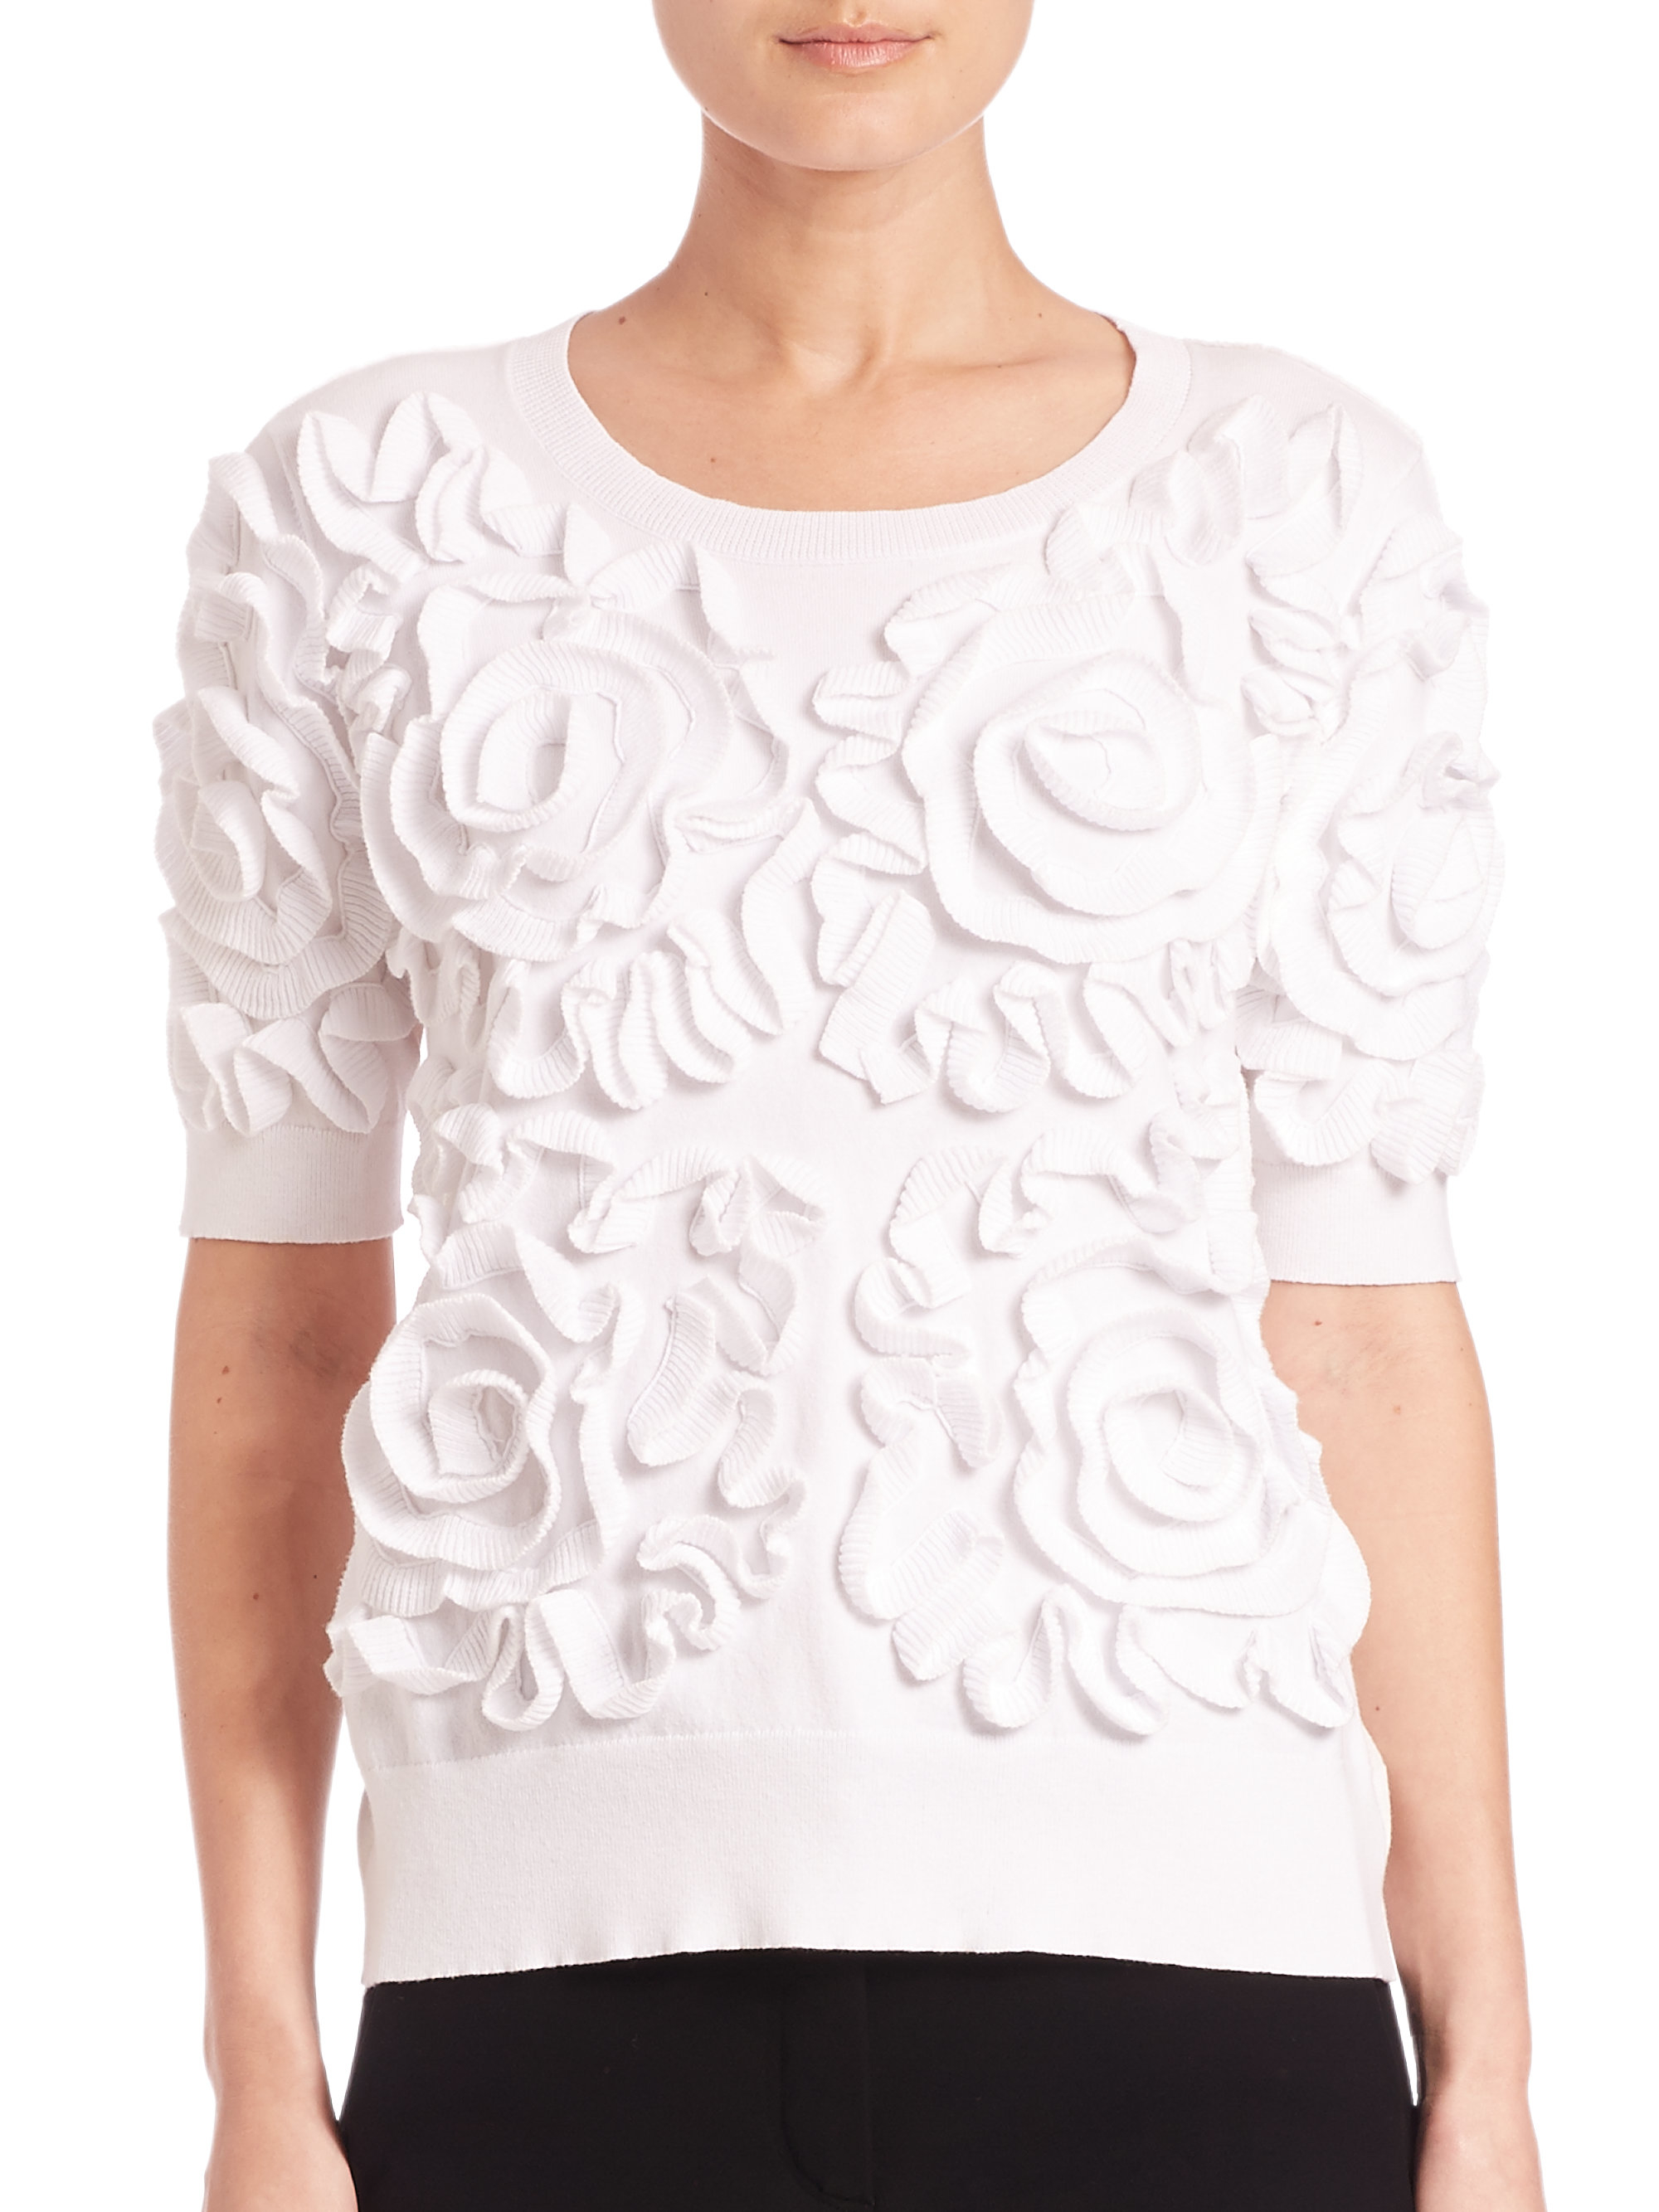 sonia-by-sonia-rykiel-white-floral-frill